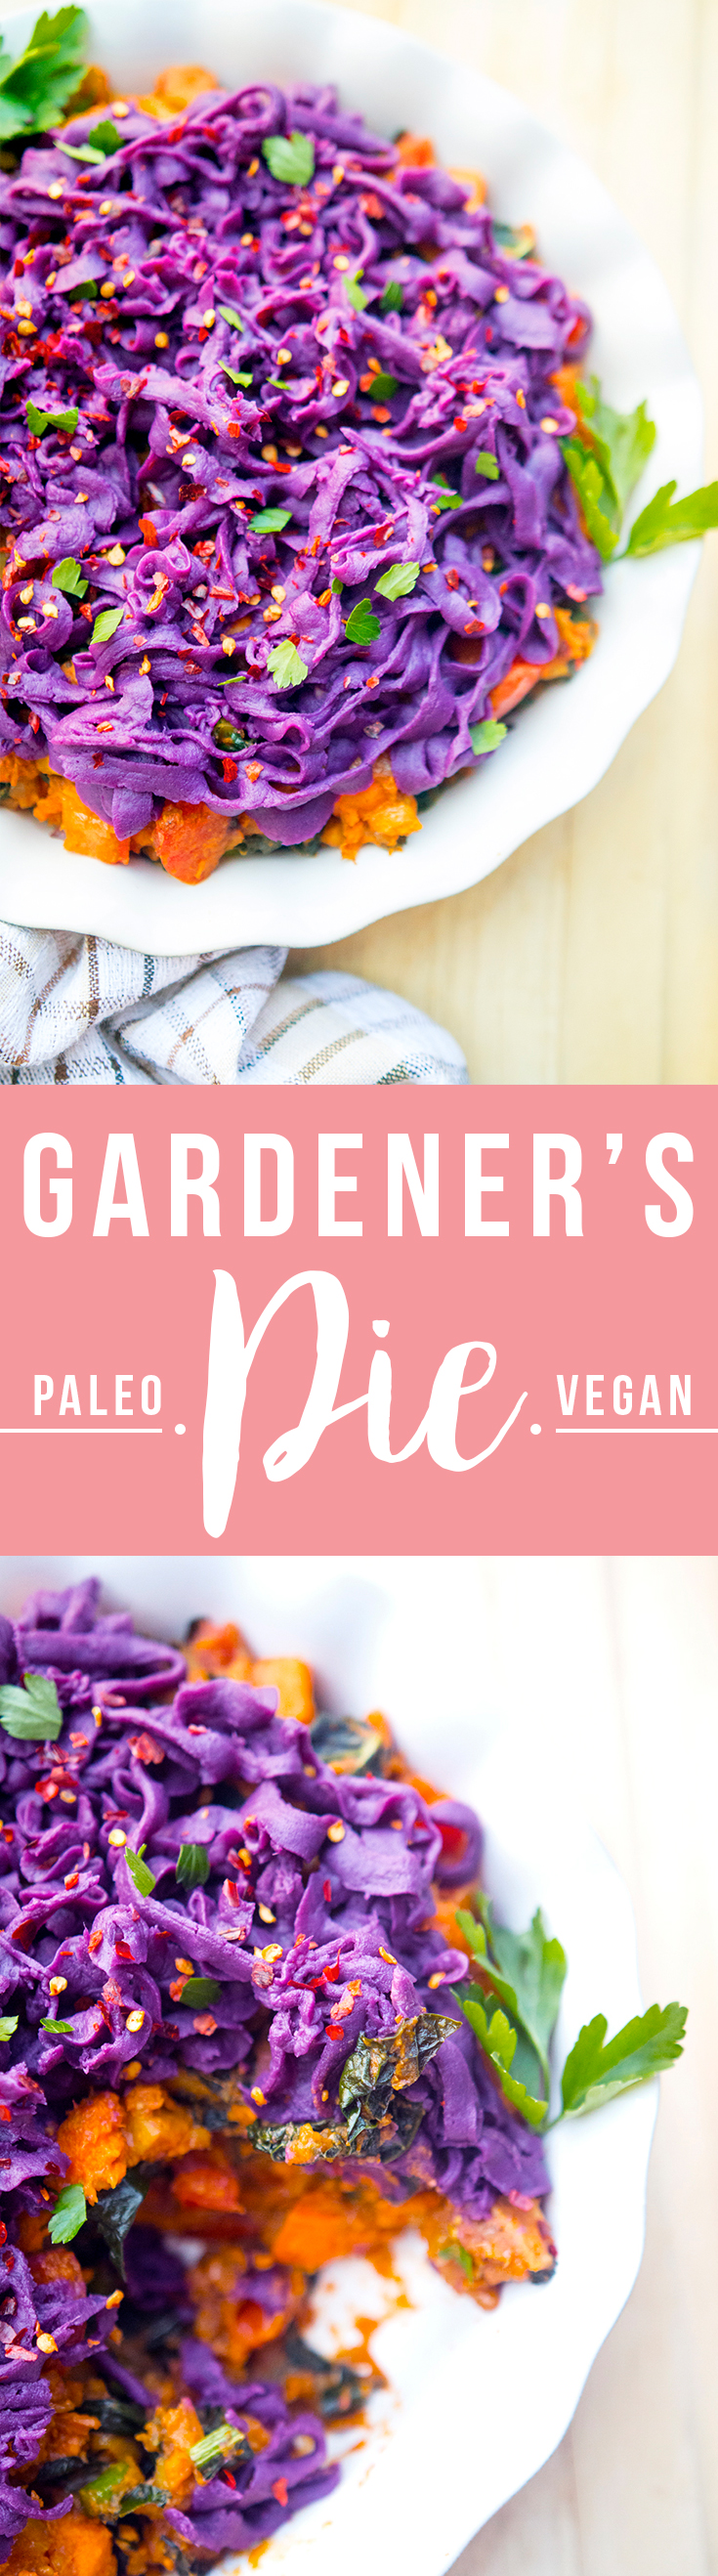 Gardener's Pie (curried vegetables under a purple sweet potato topping) with Imperfect Produce, a startup that helps prevent food waste. | Fresh Planet Flavor